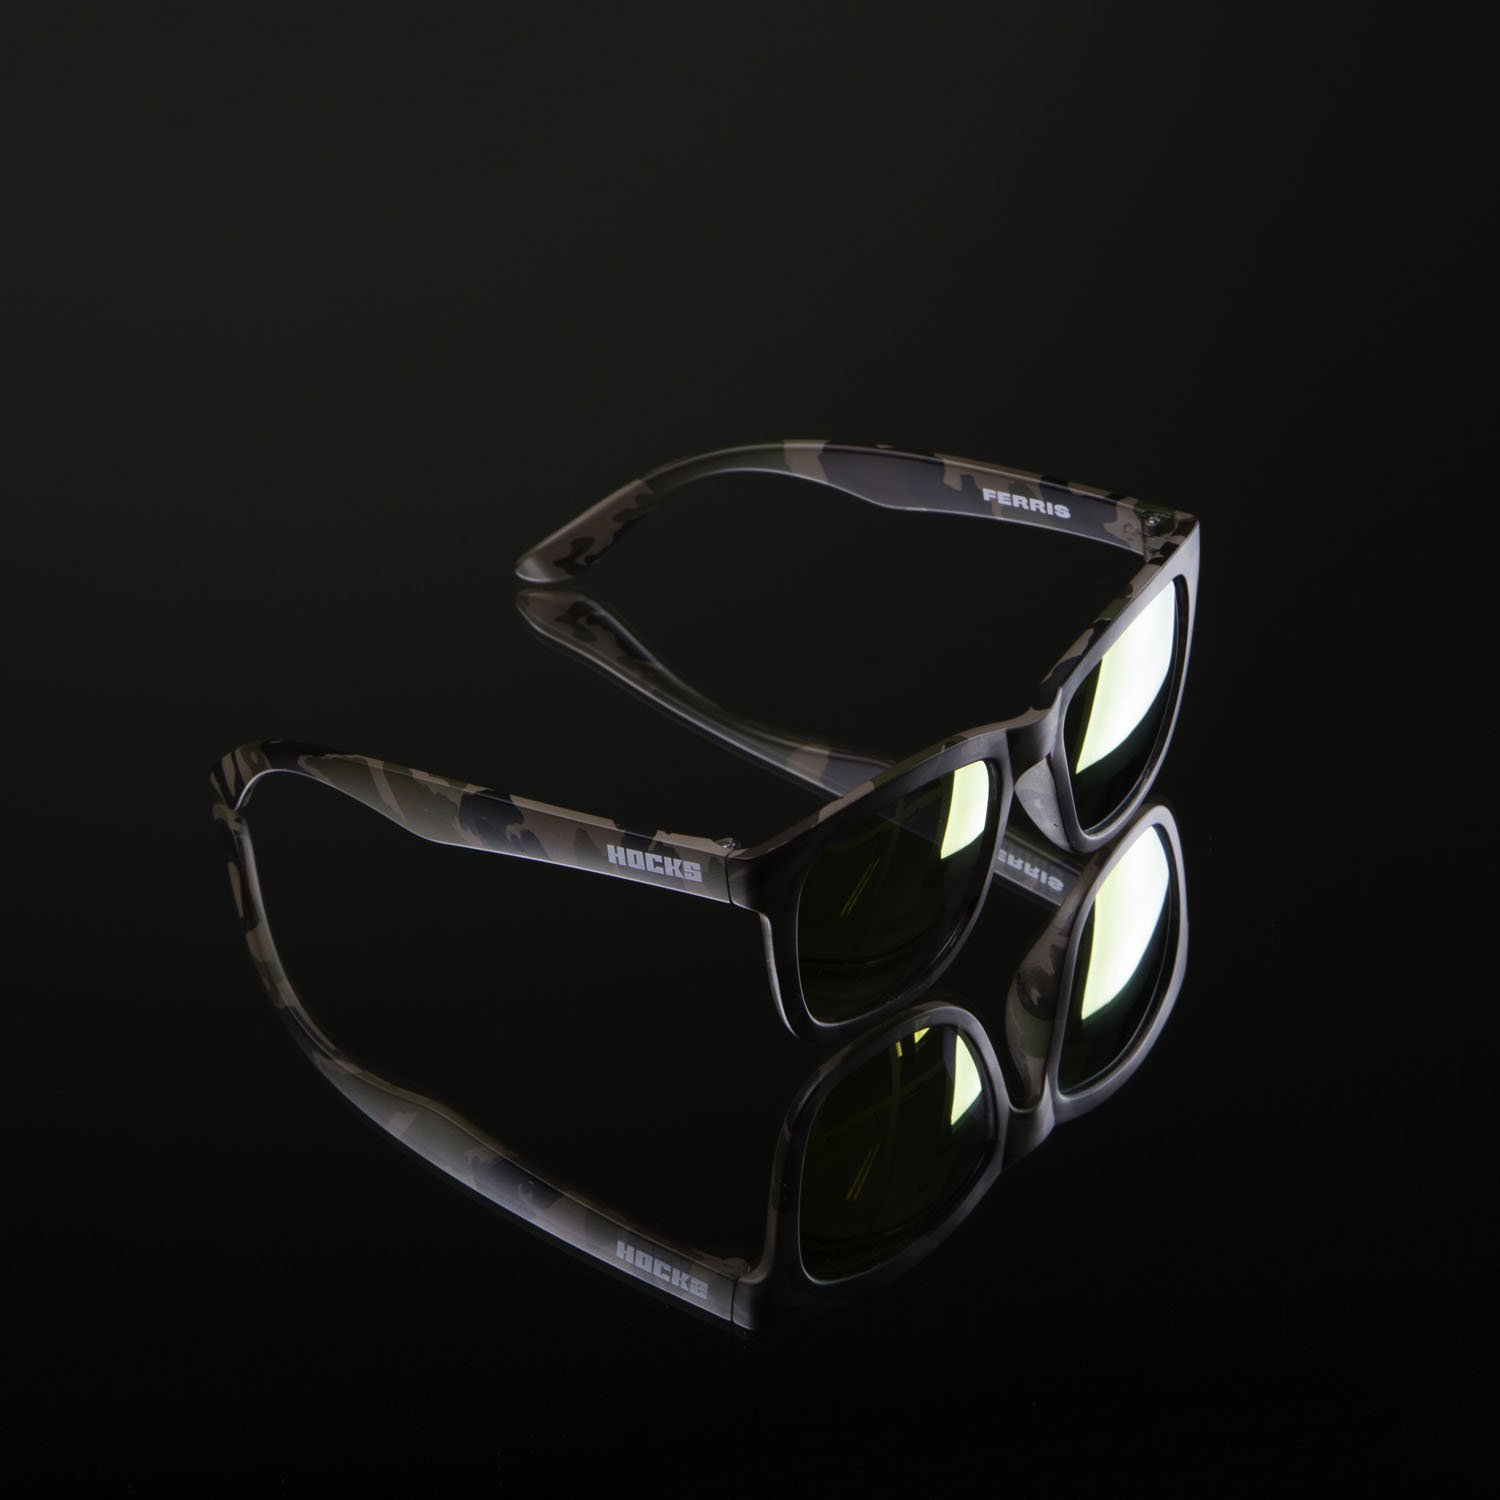 Hocks Eyewear